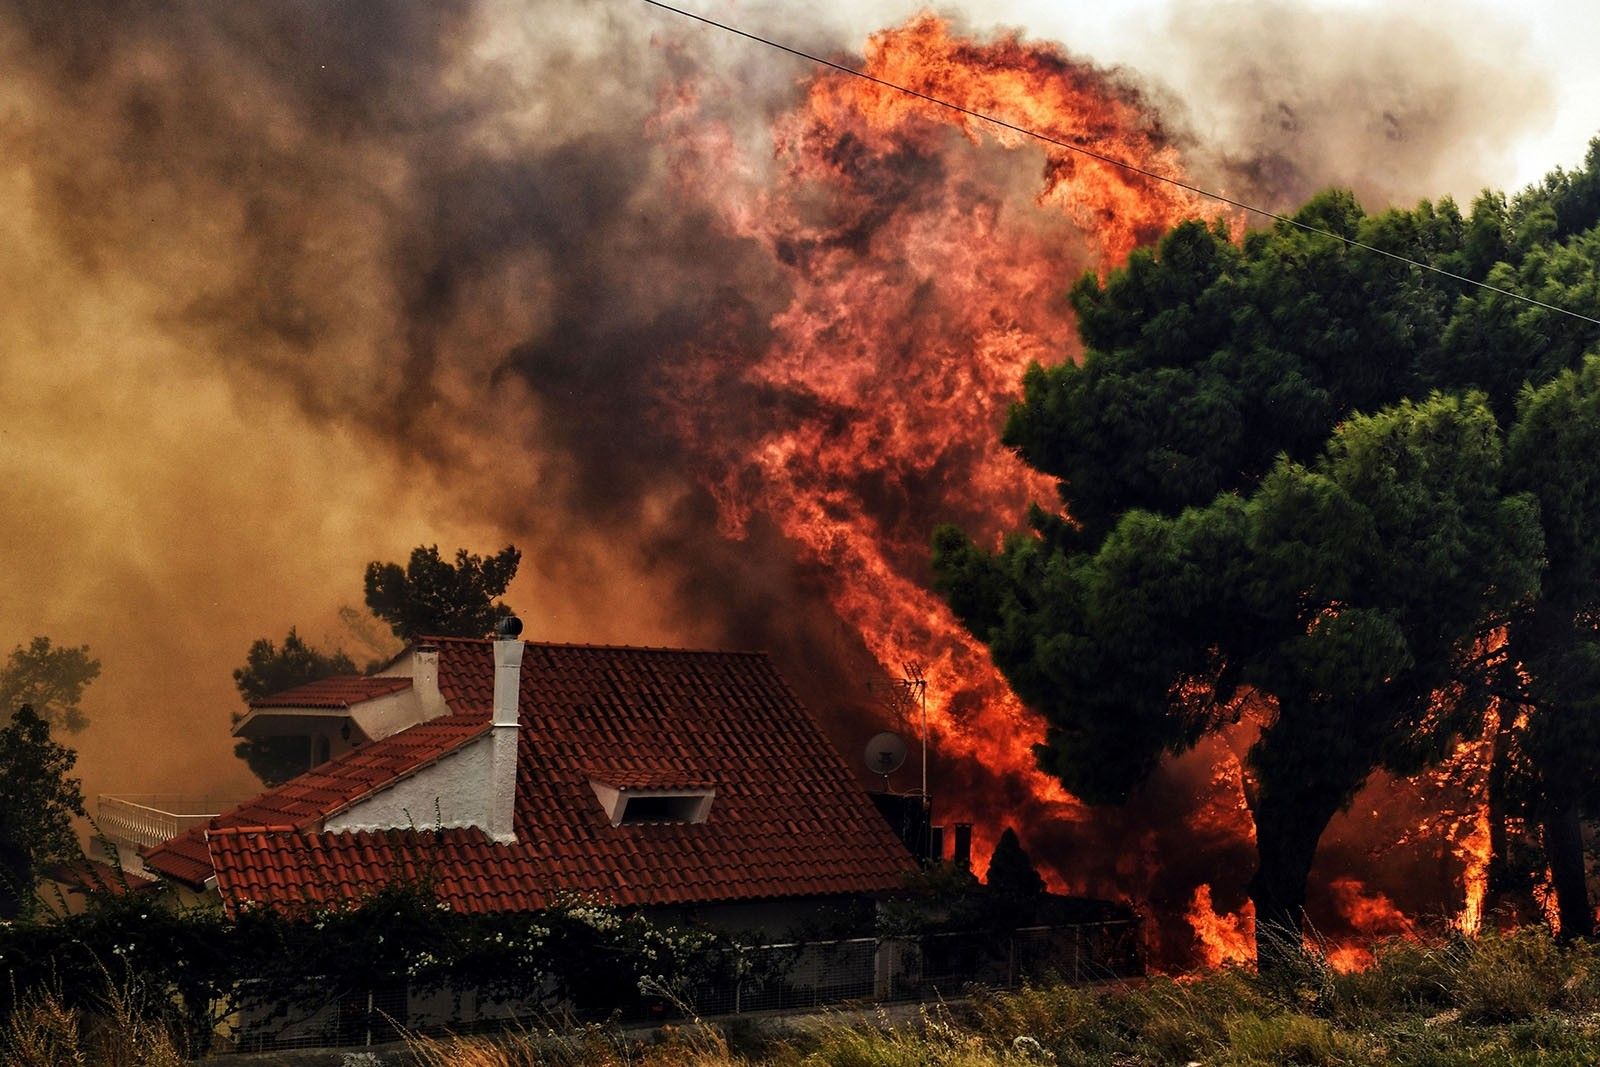 A house is threatened by a huge blaze during a wildfire in Kineta, near Athens, on July 23, 2018.